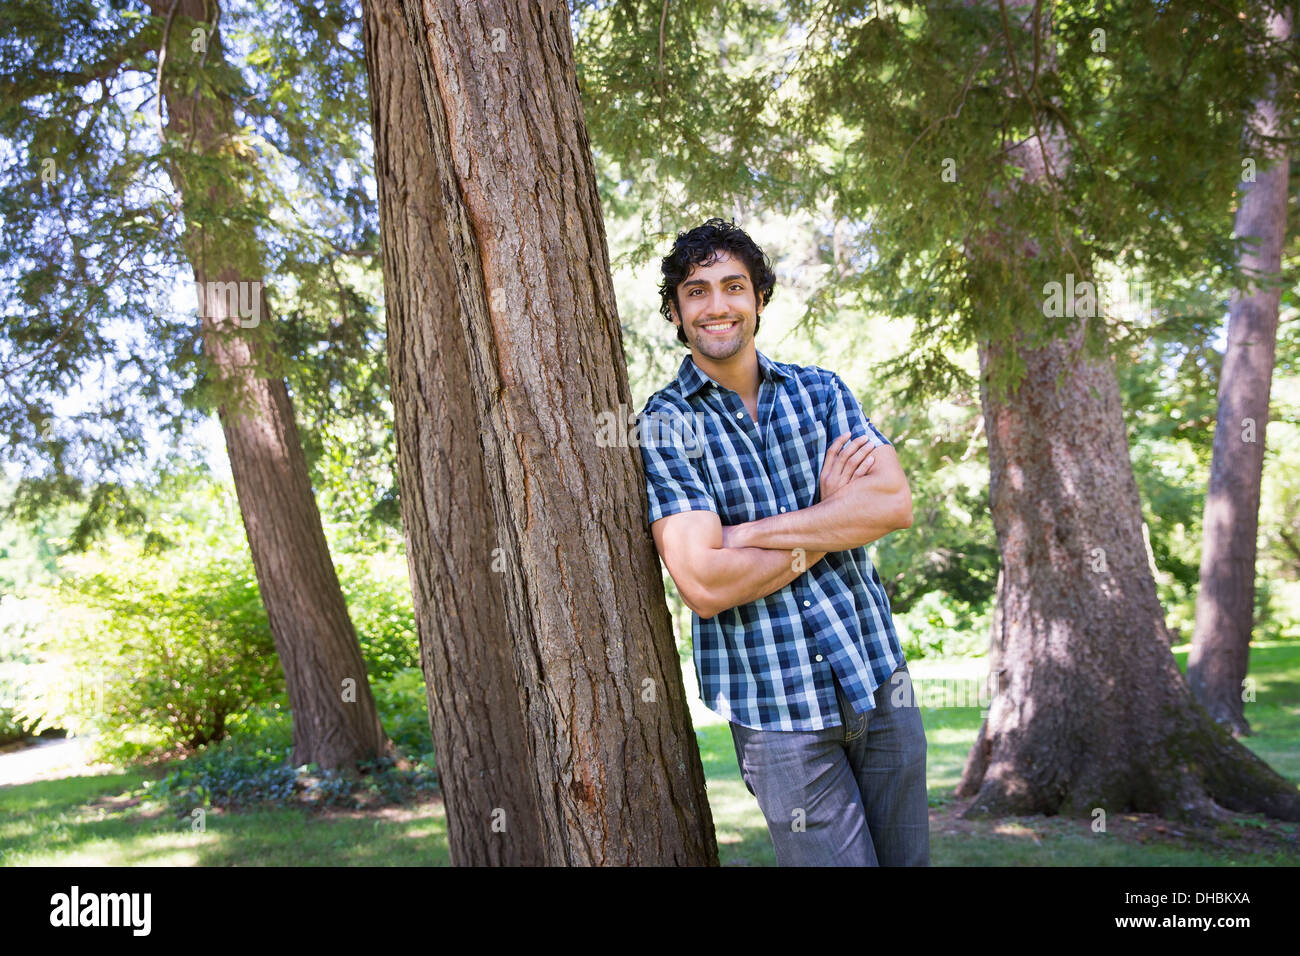 A farm growing and selling organic vegetables and fruit. A man leaning against a tree. - Stock Image